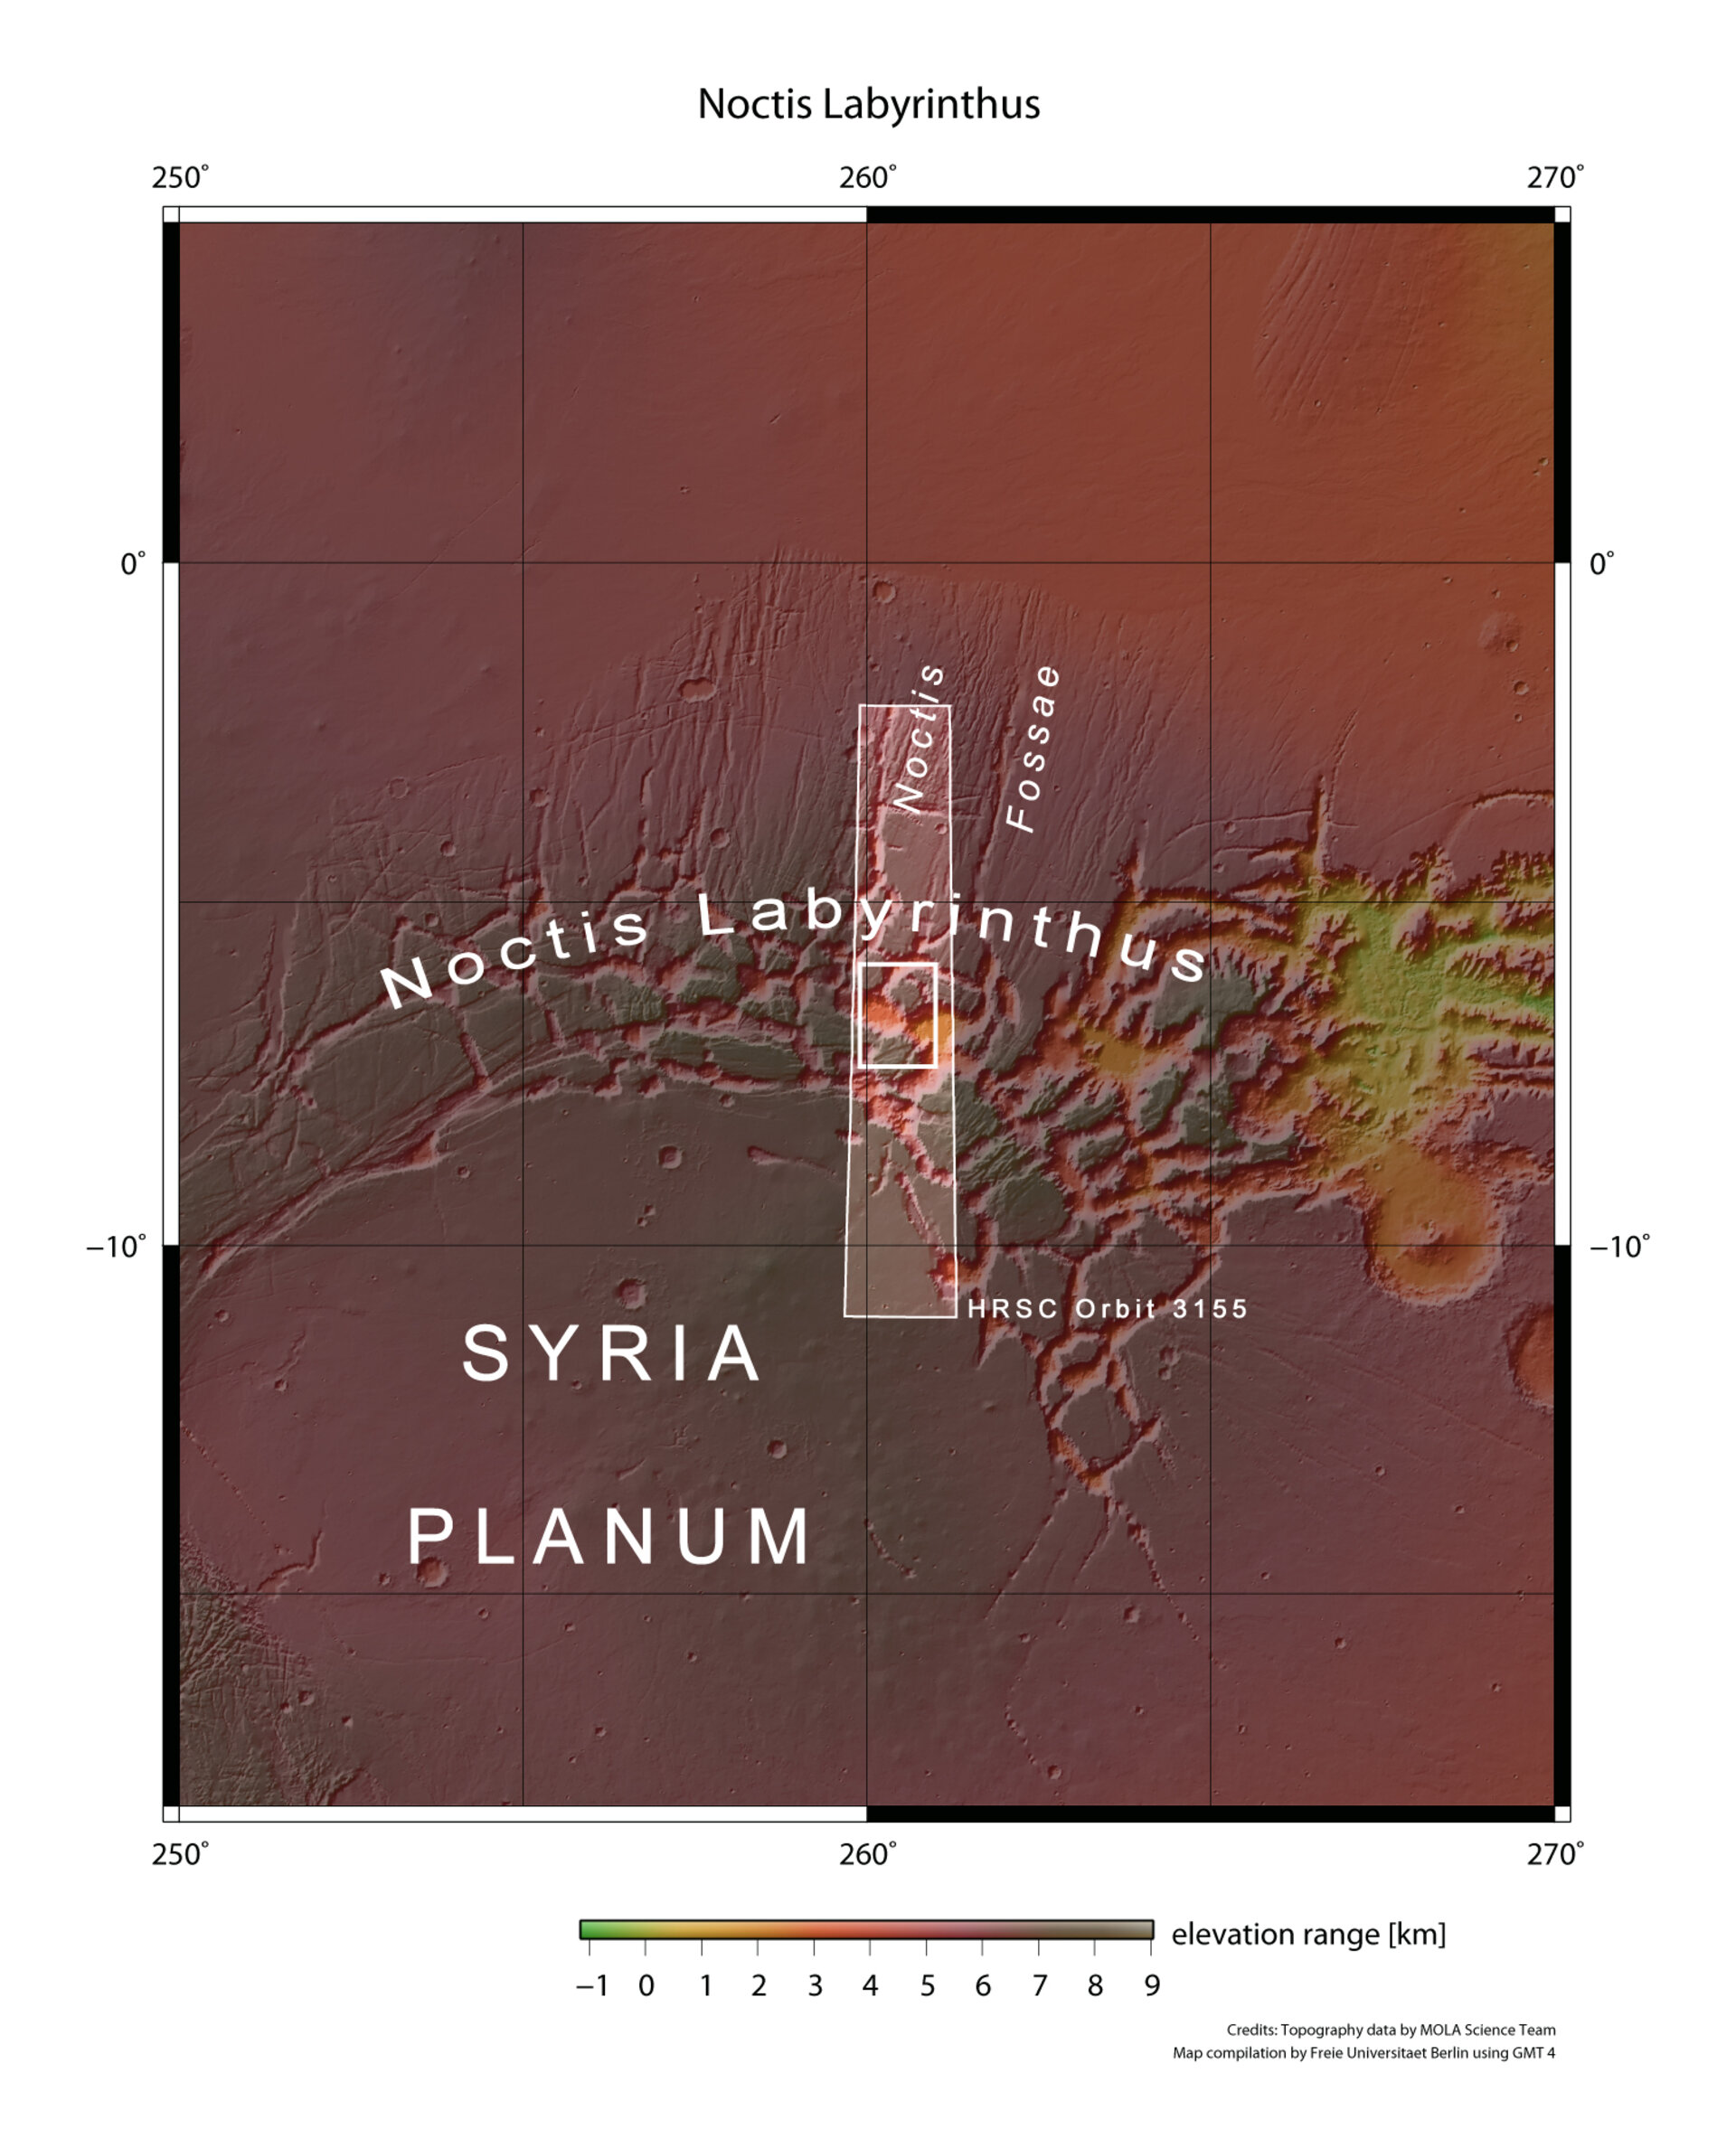 Noctis Labyrinthus context map